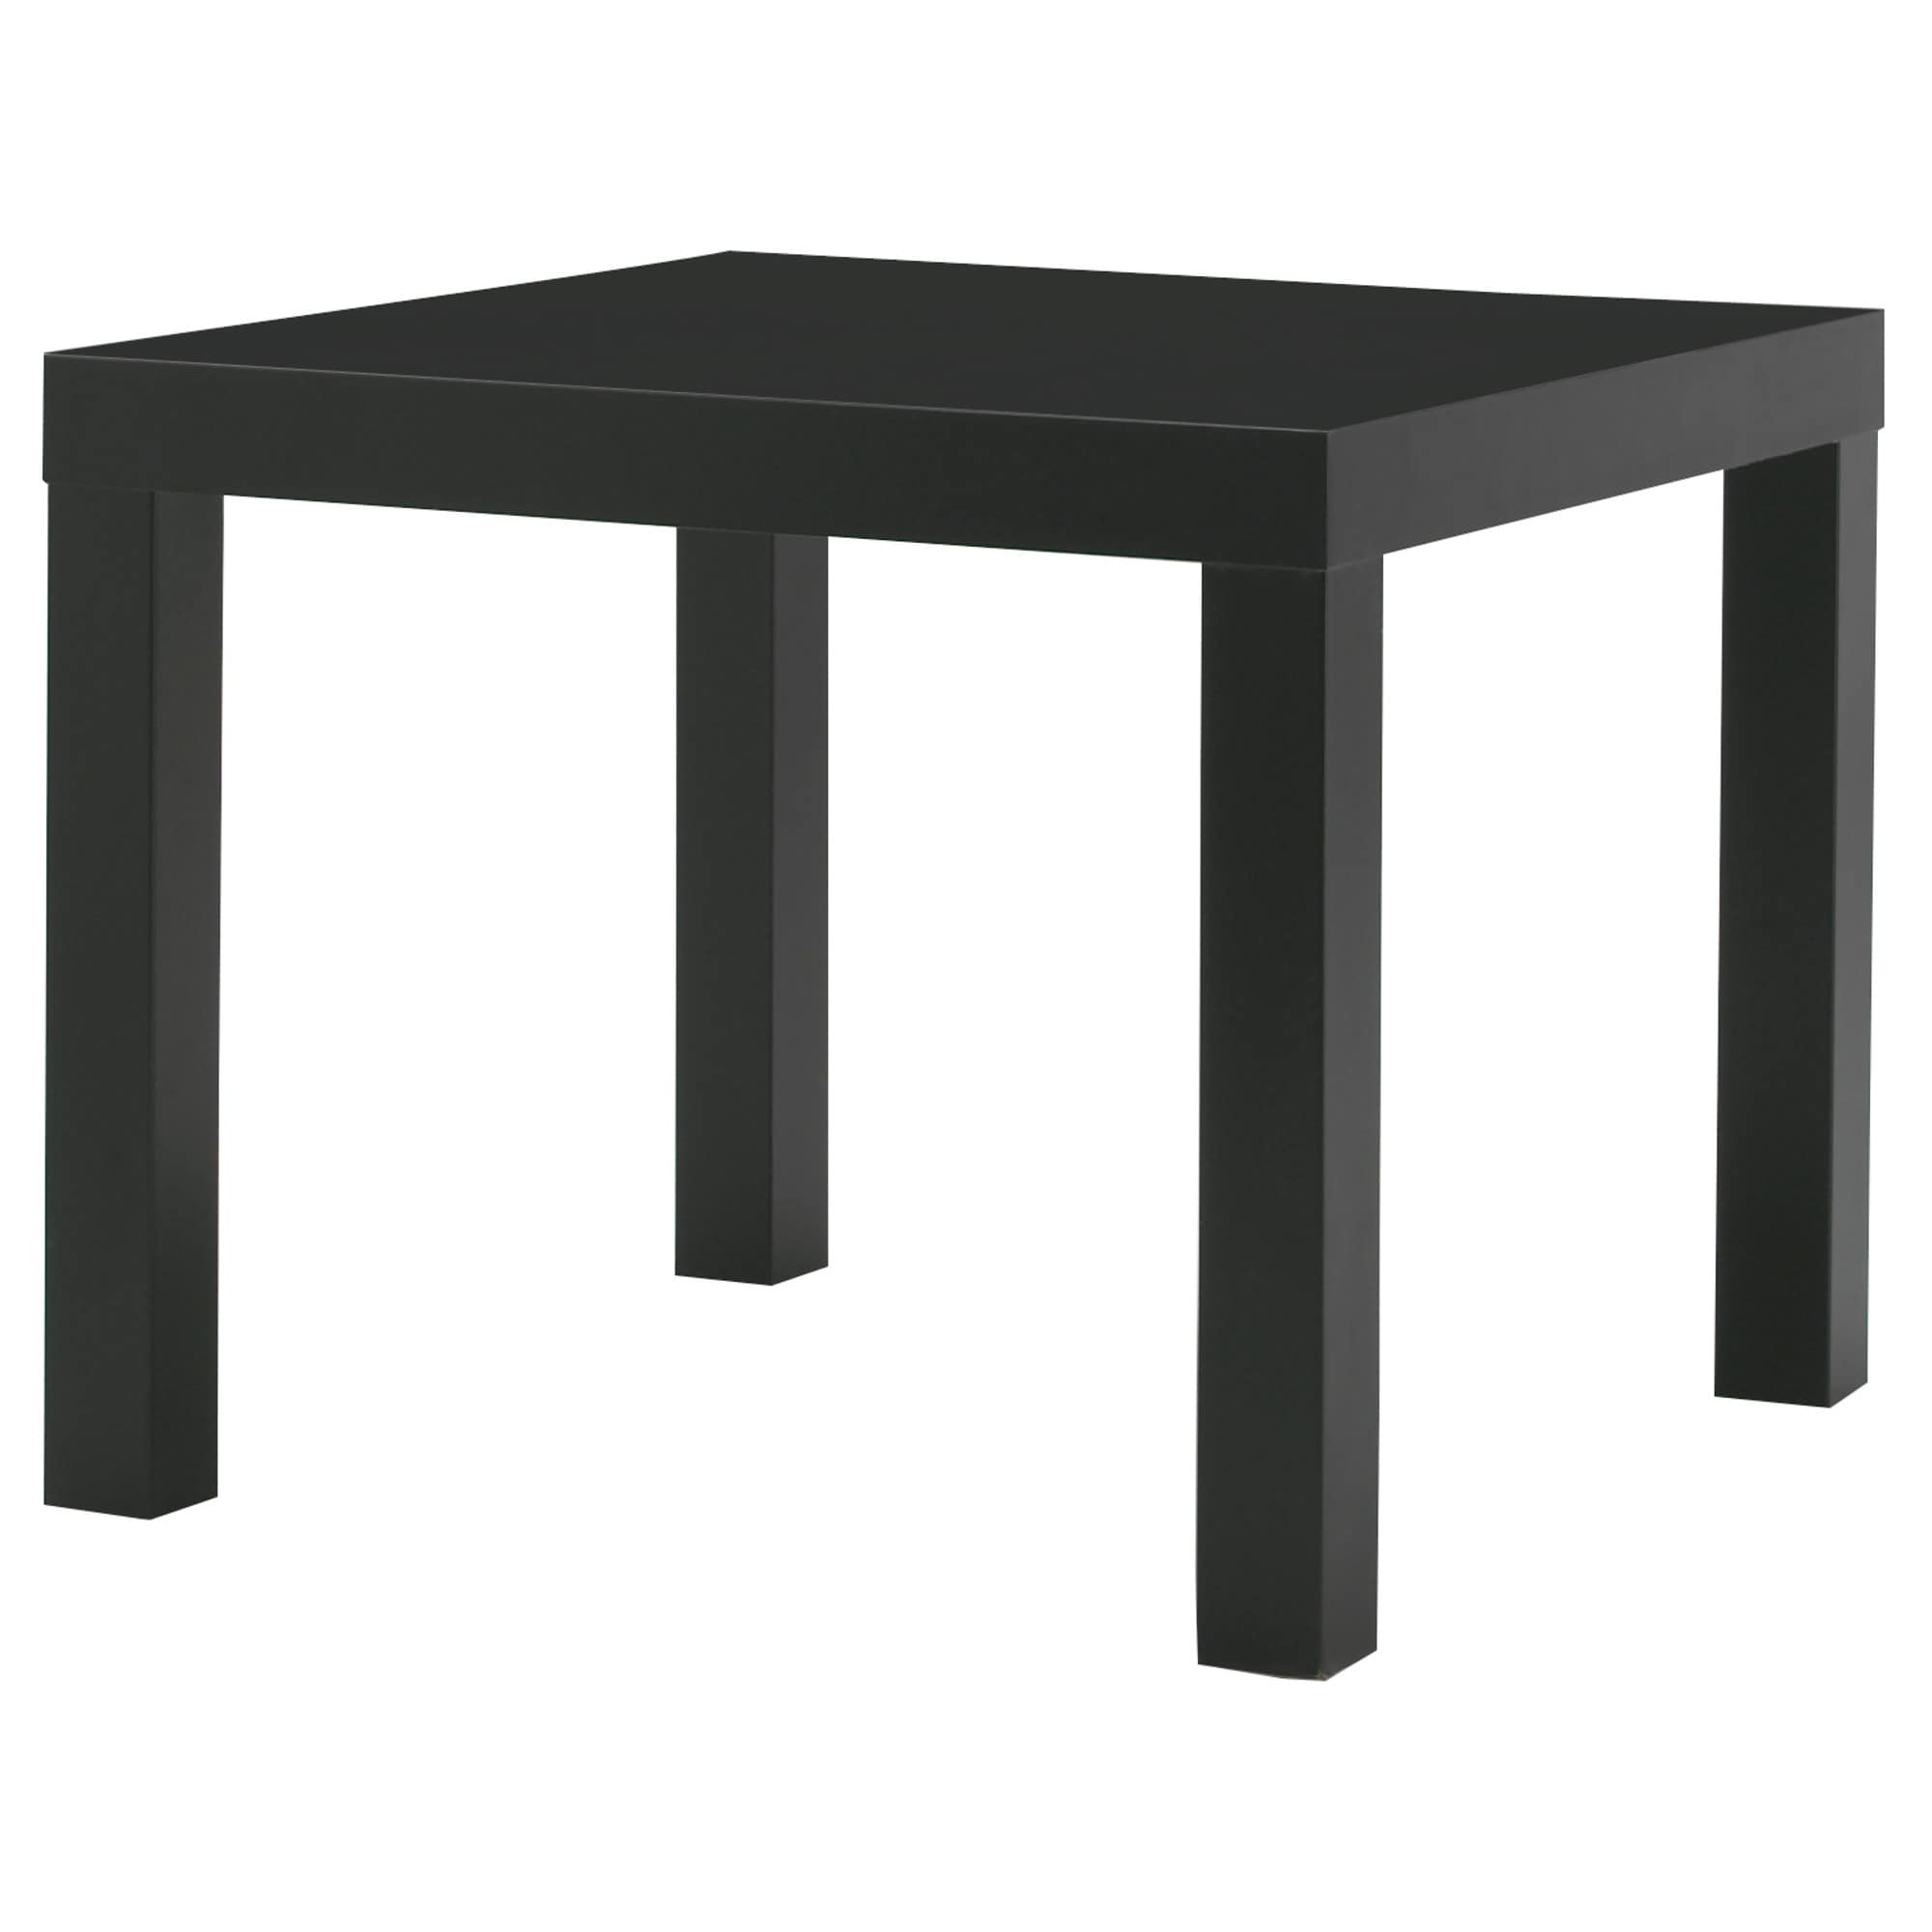 lack side table black ikea coffee and end tables inter systems matching rustic farmhouse entry jojo chip magnolia oak powell furniture instructions pulaski oval glass lazy boy